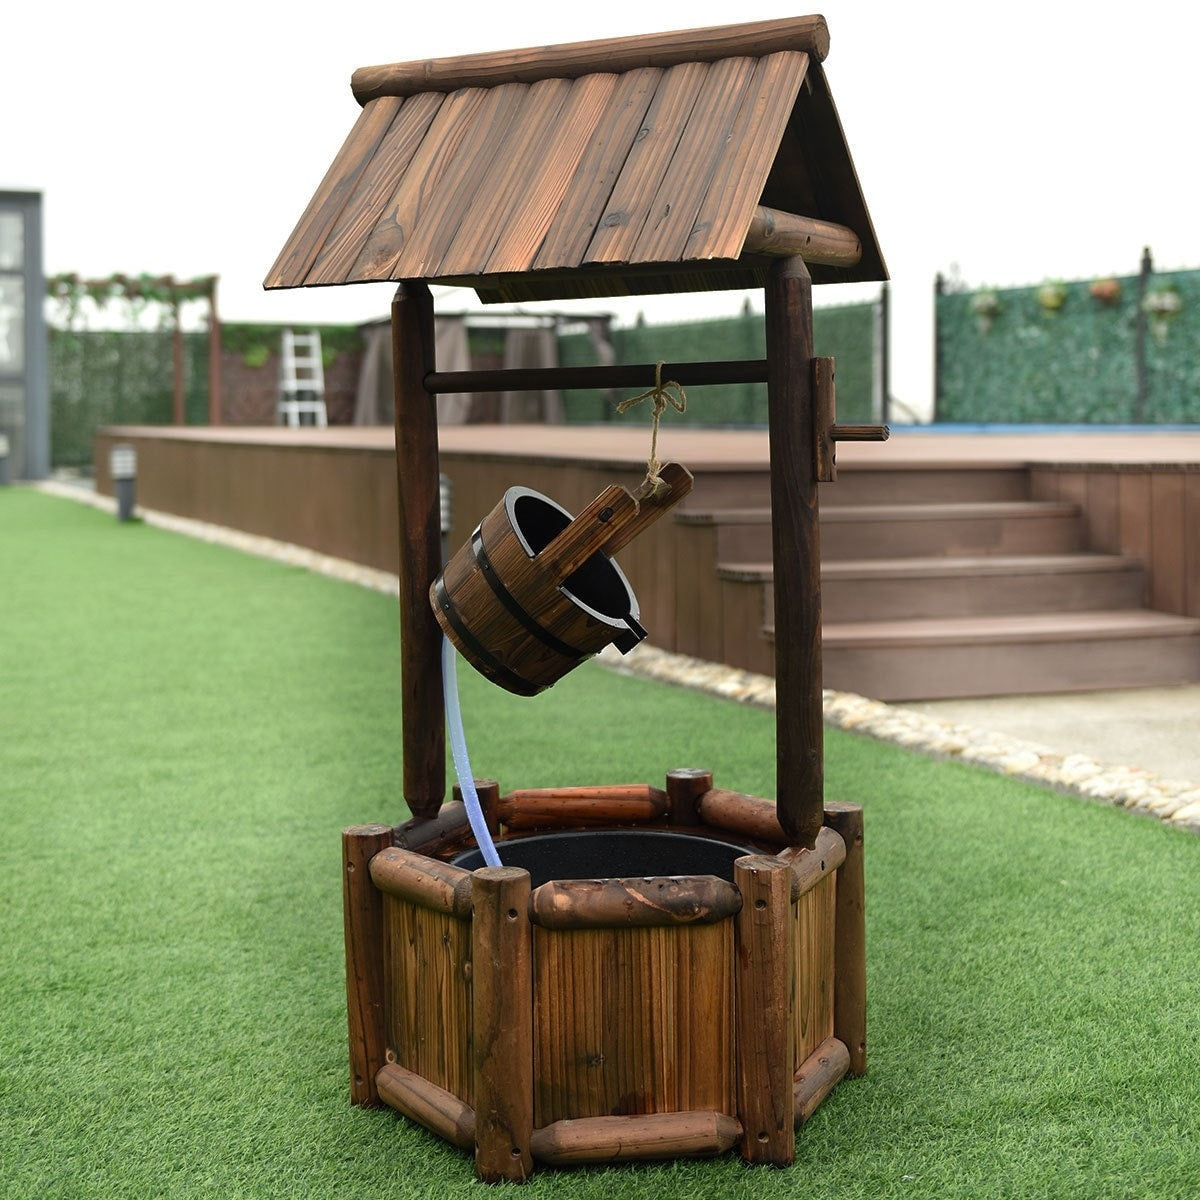 Garden Wooden Wishing Well Water Fountain with Electric Pump